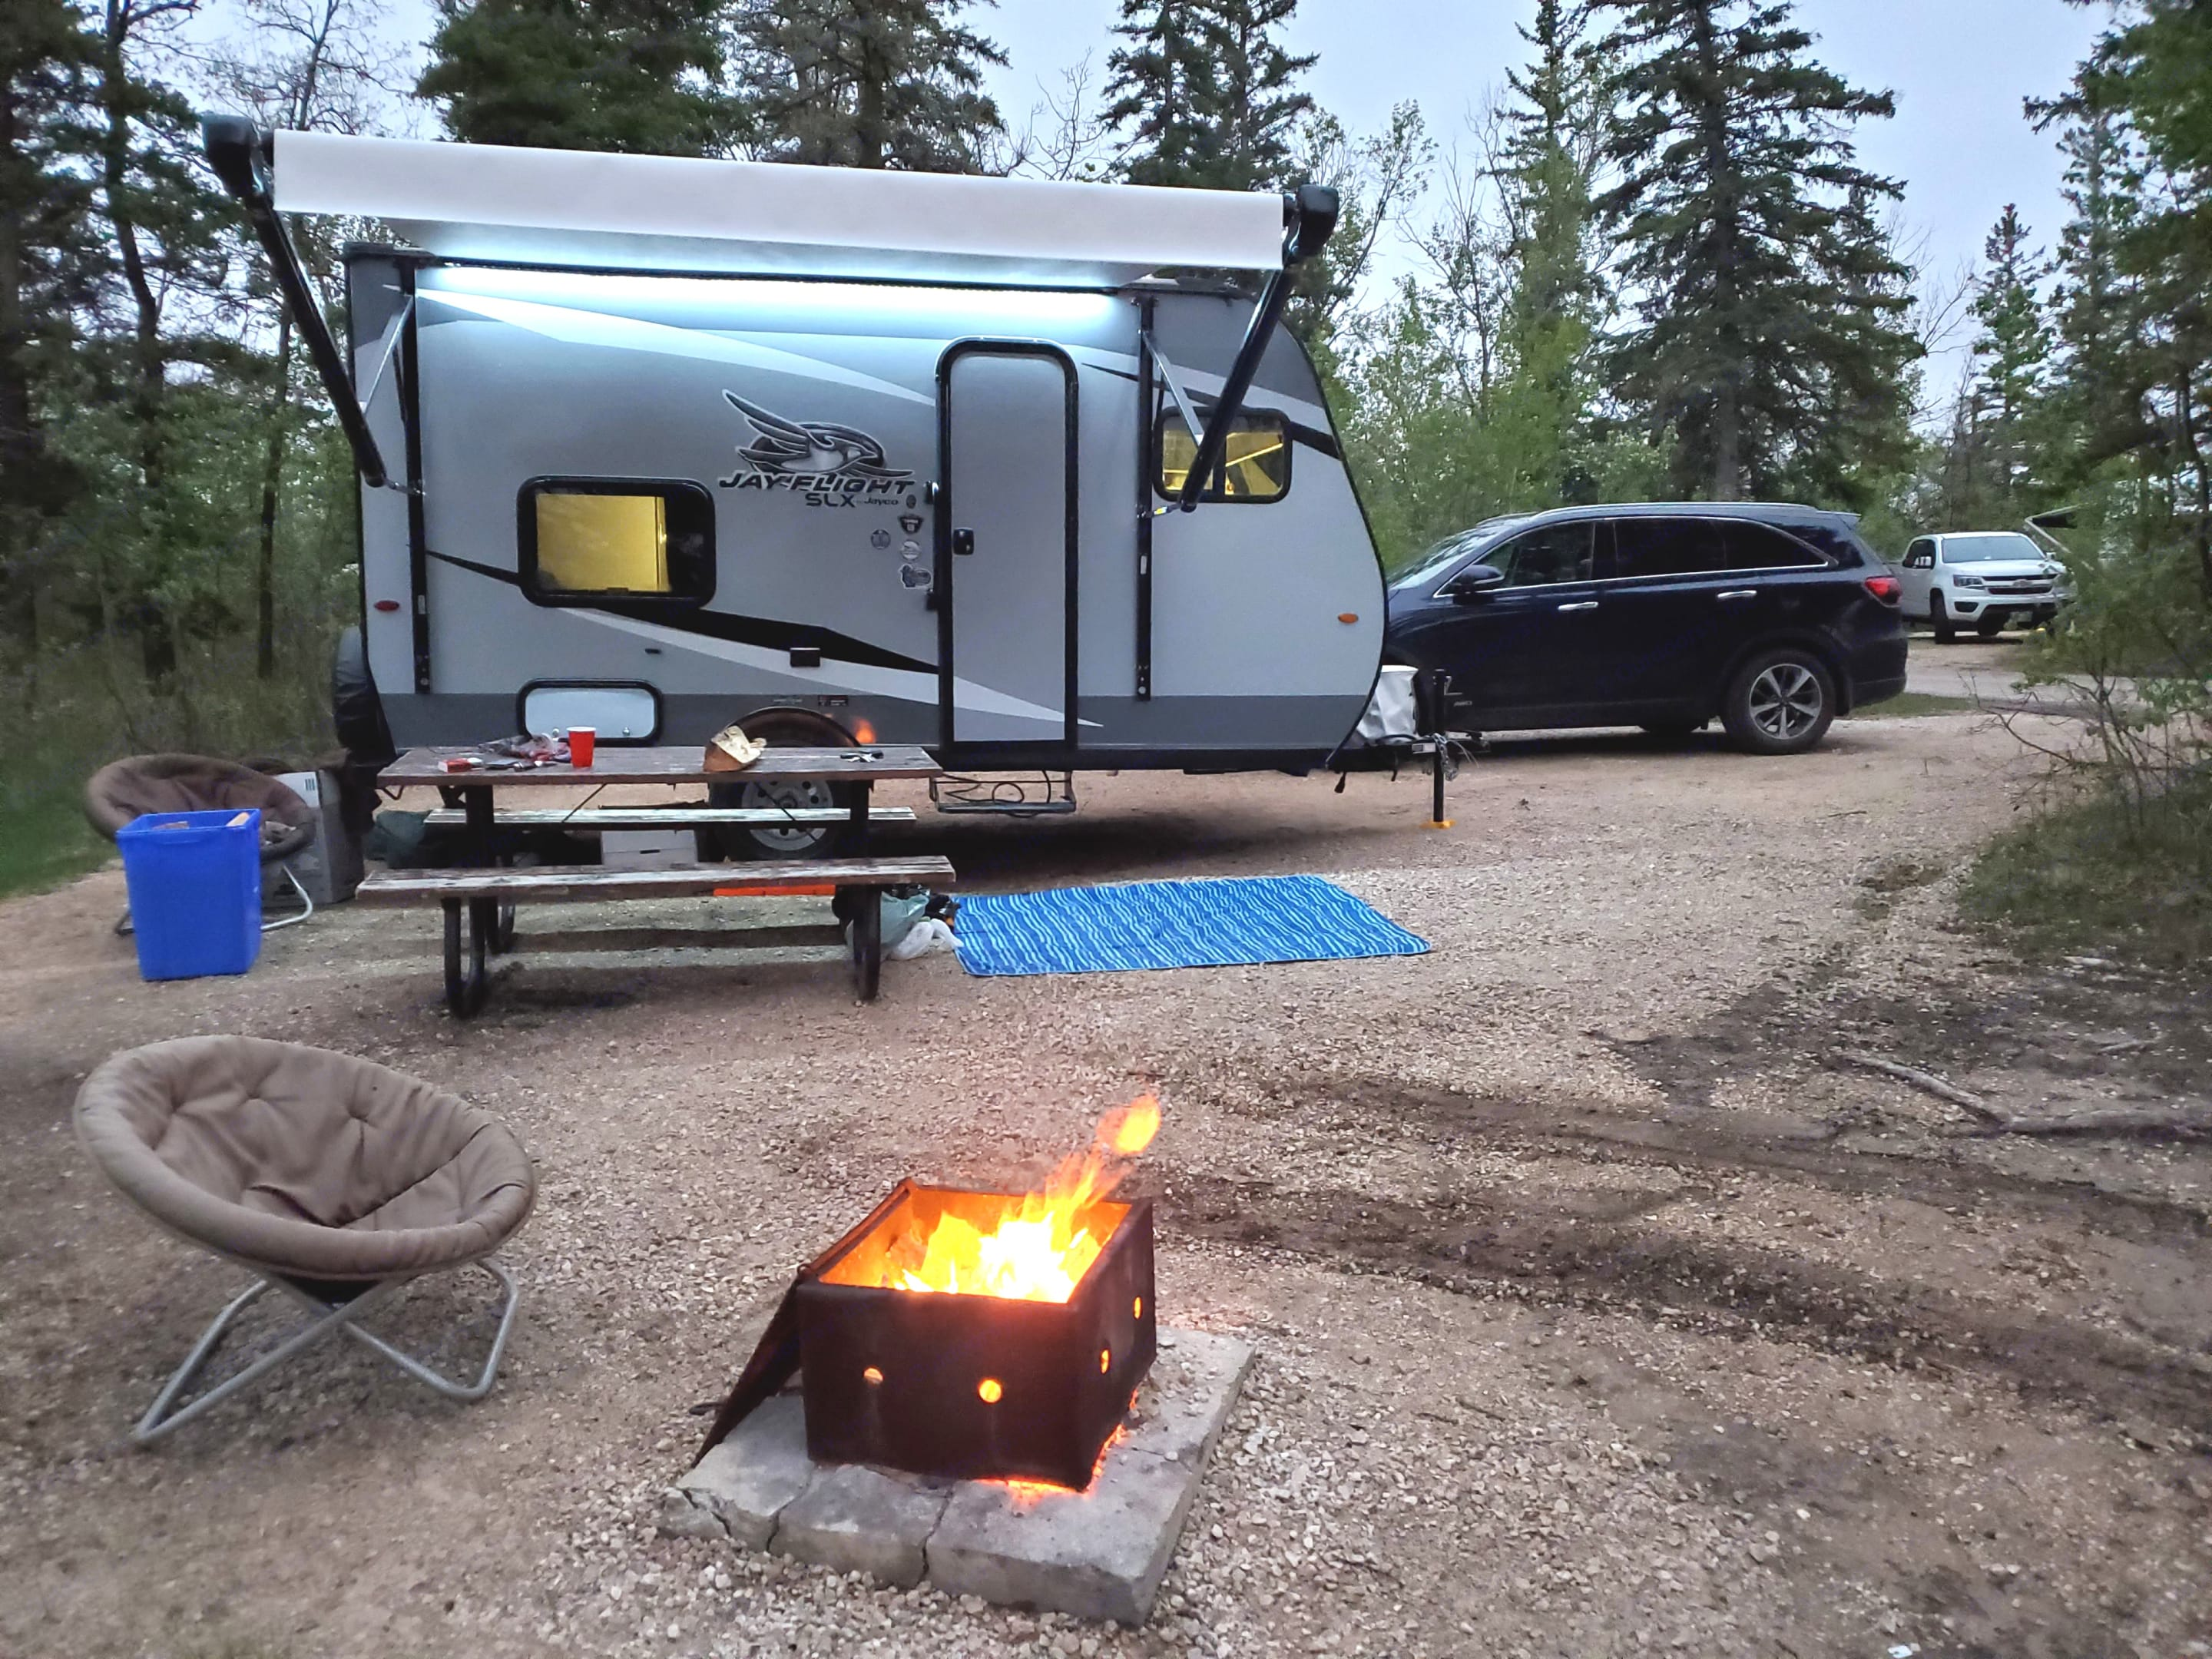 All set up for the evening, enjoying a fire.. Jayco Jay Flight 2021